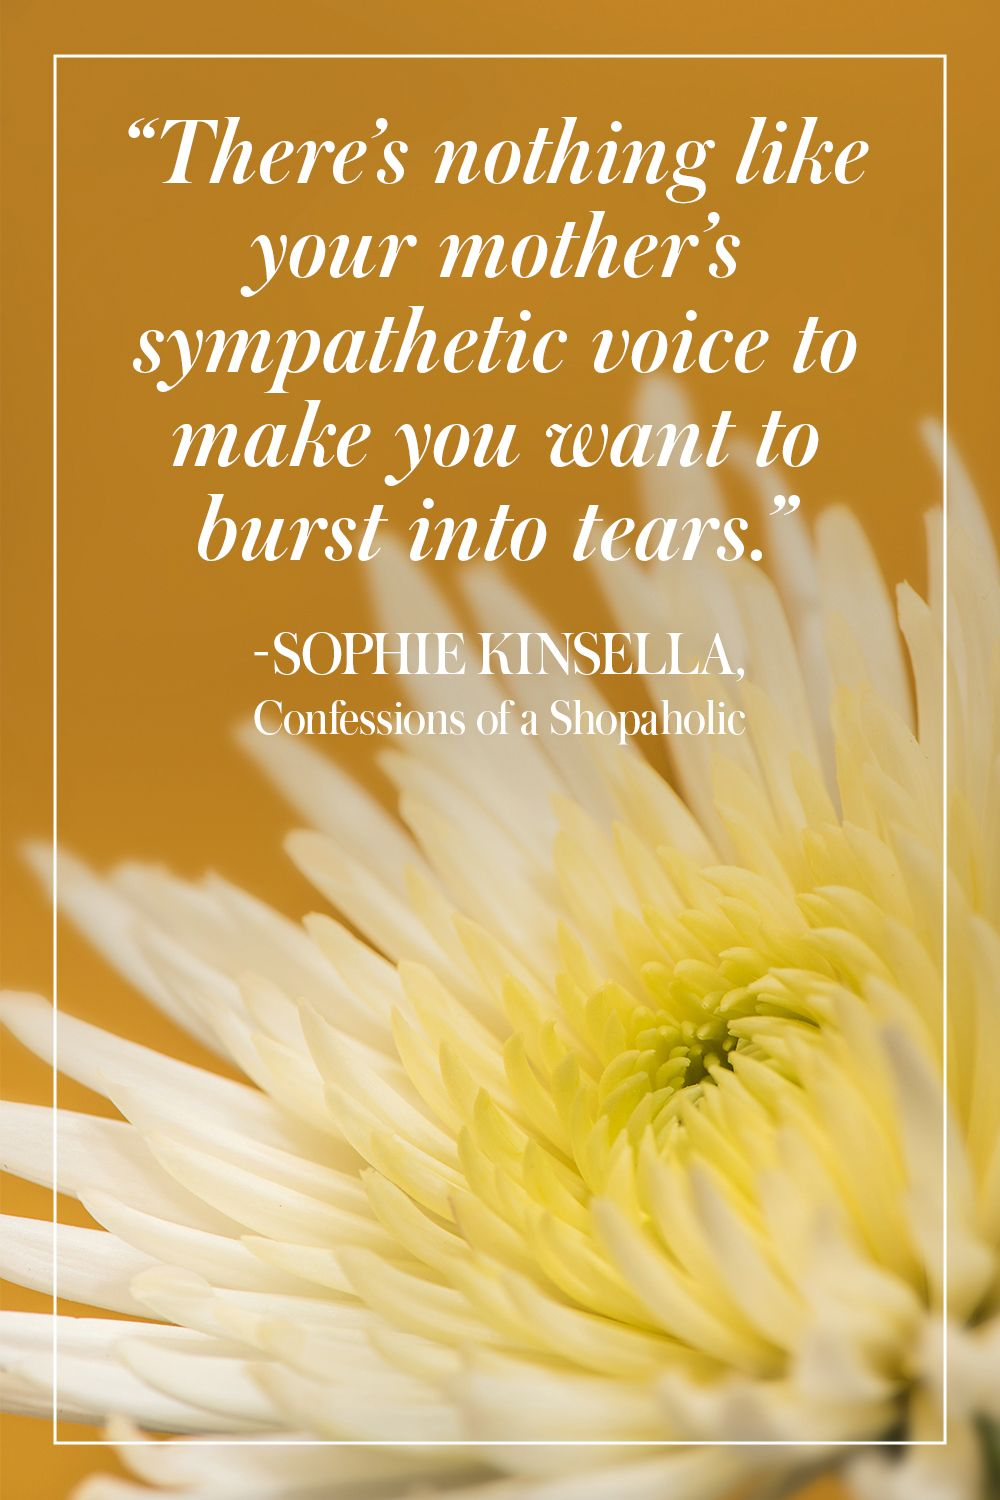 """""""There's nothing like your mother's sympathetic voice to make you want to burst into tears."""" - Sophie Kinsella, Confessions of a Shopaholic"""